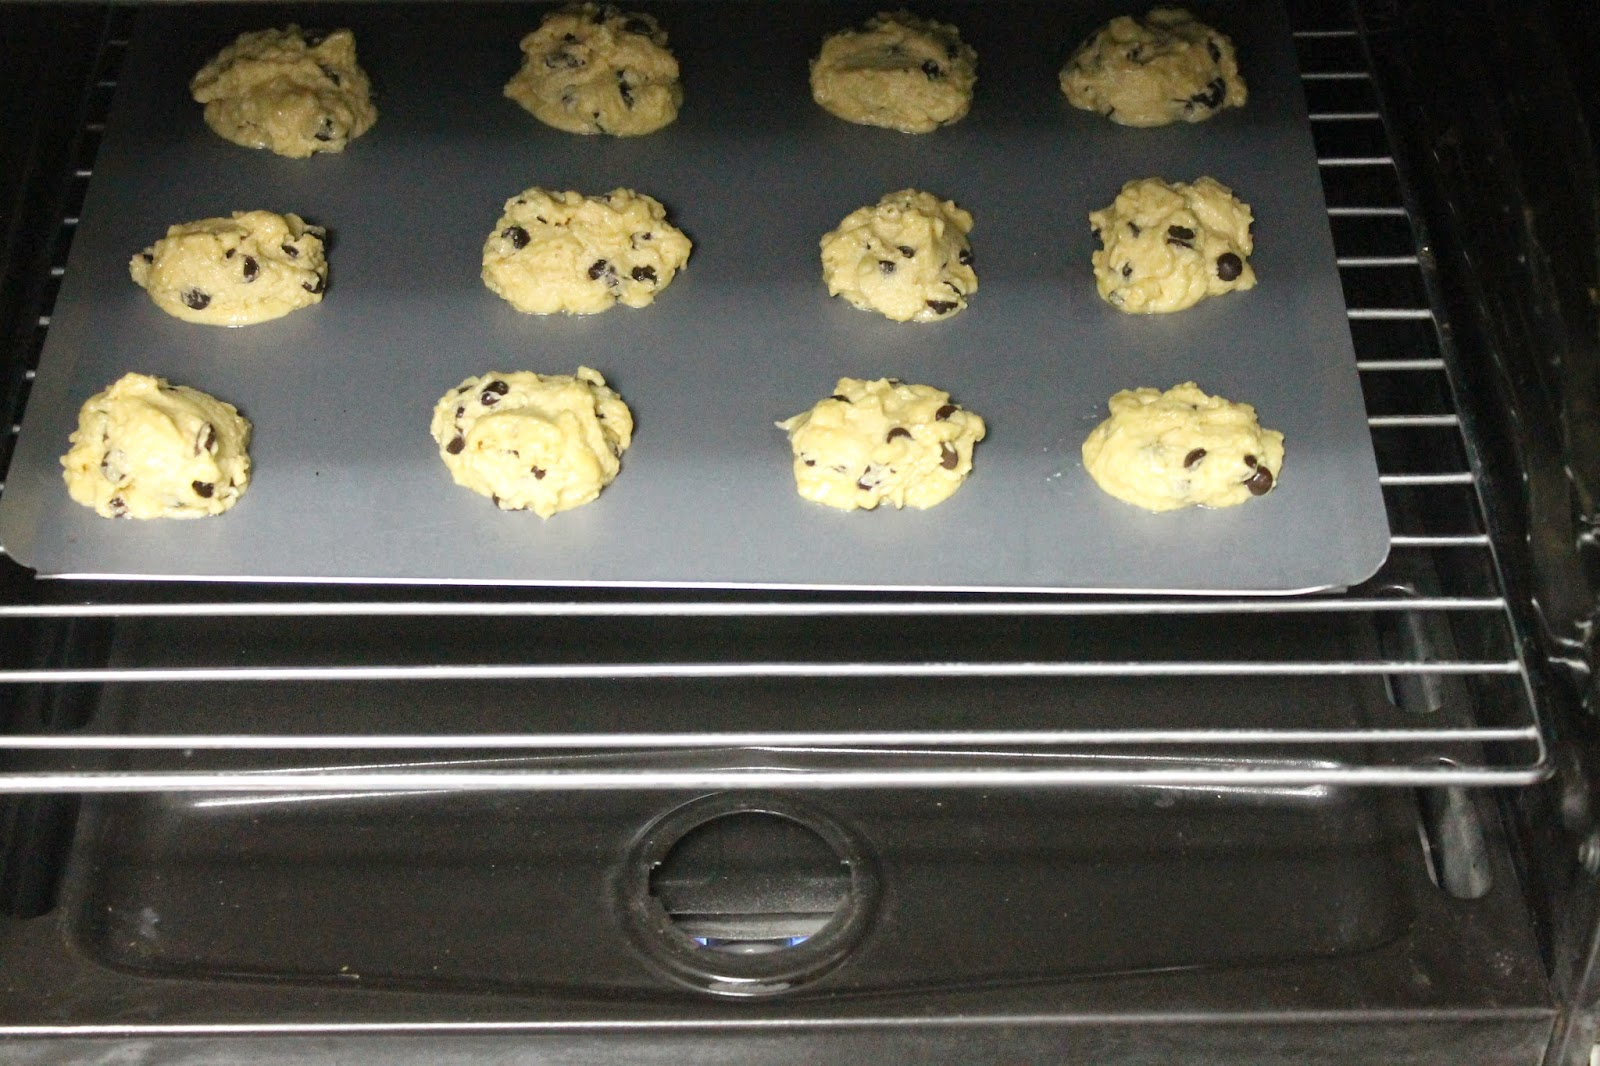 Food: Bake, 'Cause You're on Break! (baking chocolate-chip cookies)